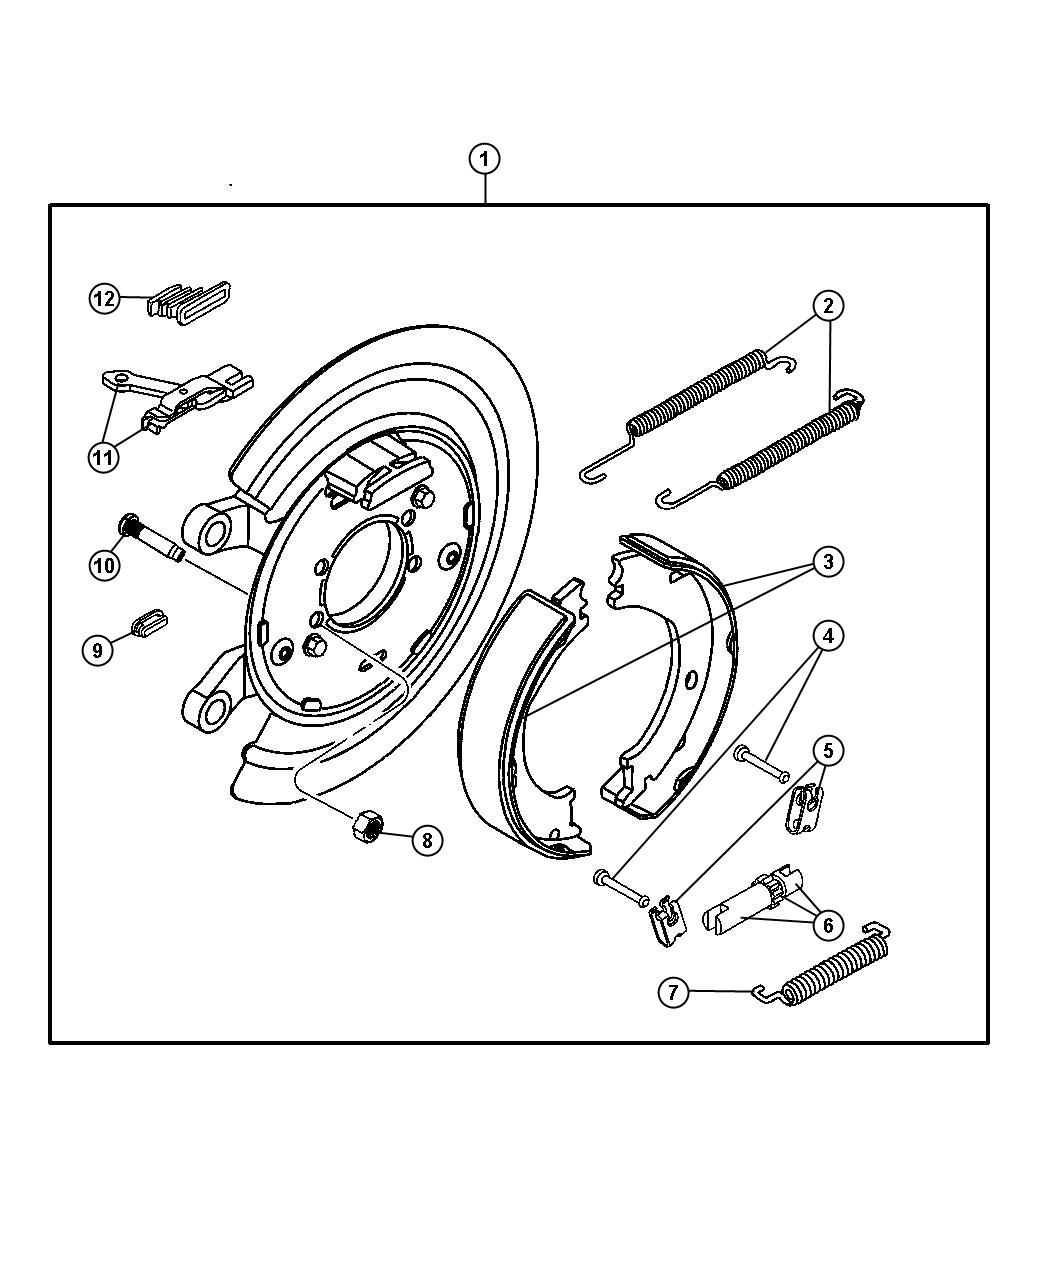 Varios Diferencial likewise HP PartList additionally HP PartList likewise Schematic Diagram Of A Rear Axle Assembly in addition Gm 8 25 ifs front differential parts. on jeep differential parts